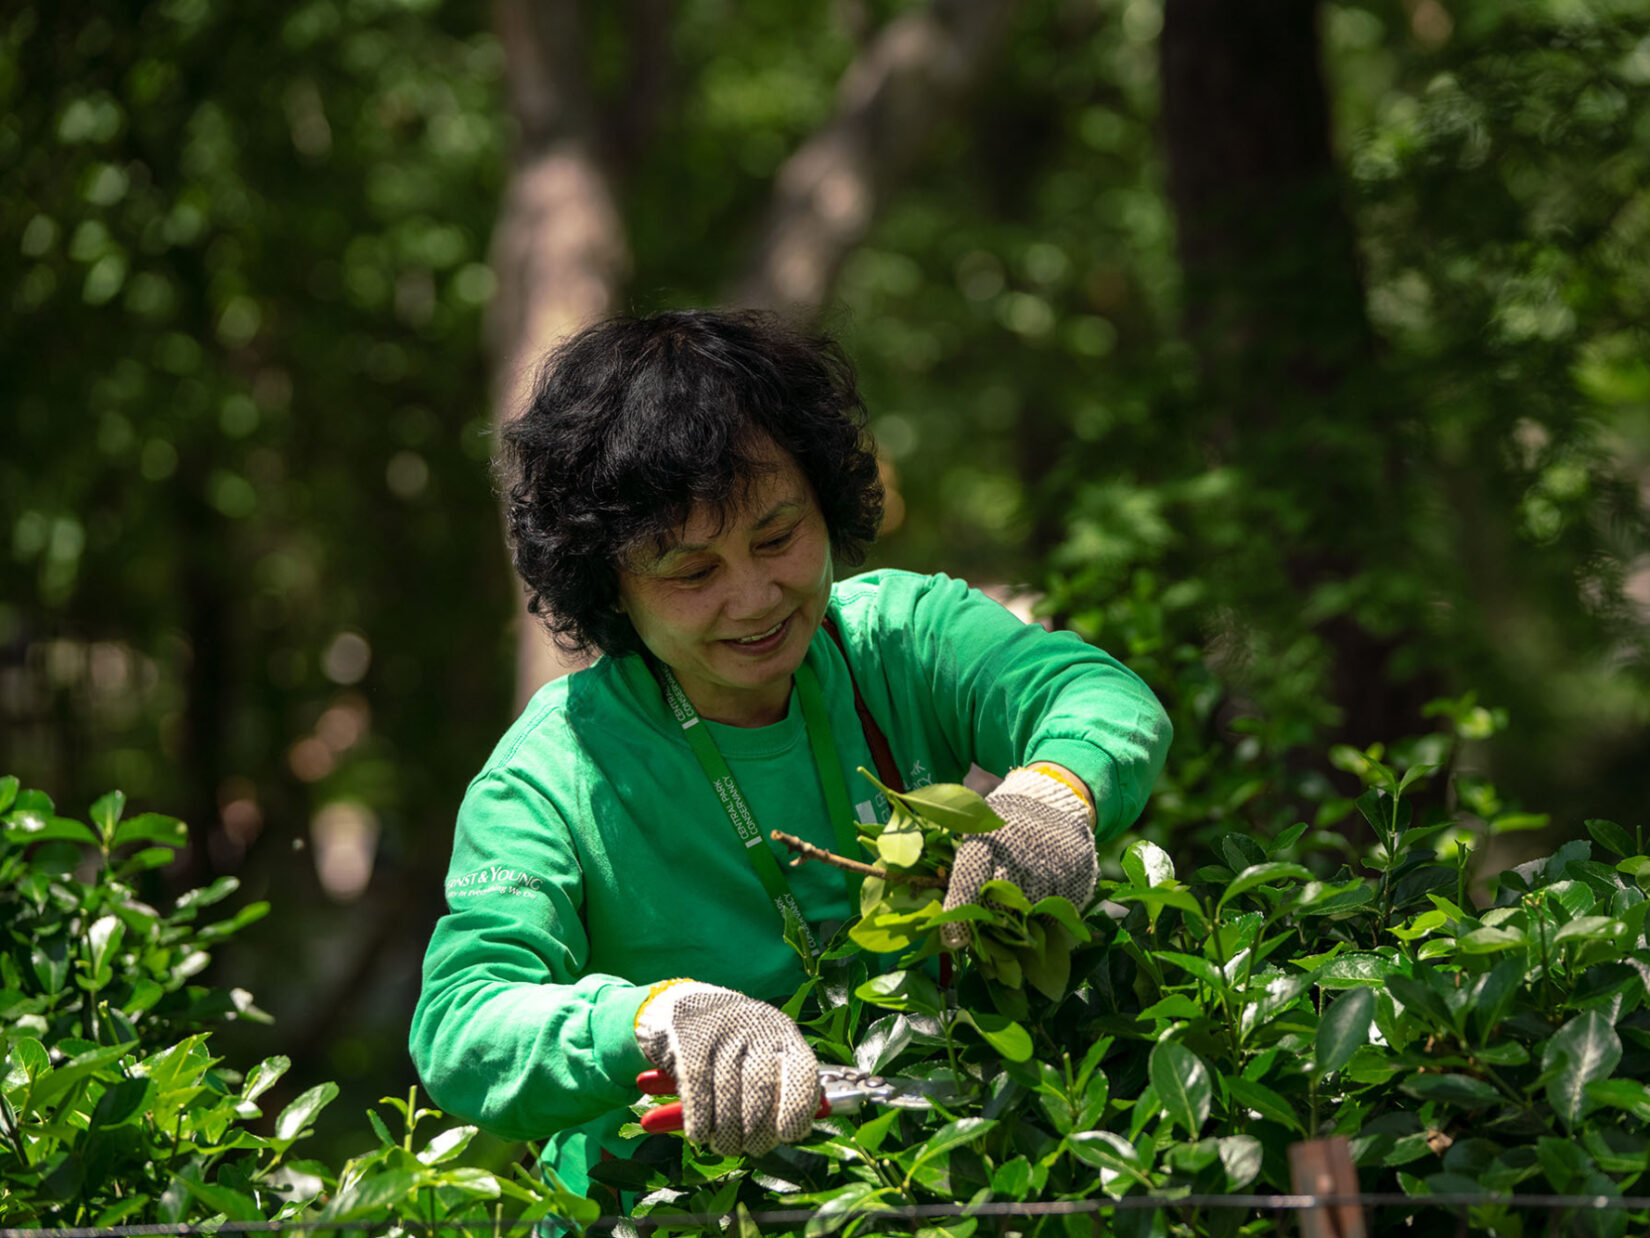 Tips from Central Parks Volunteers